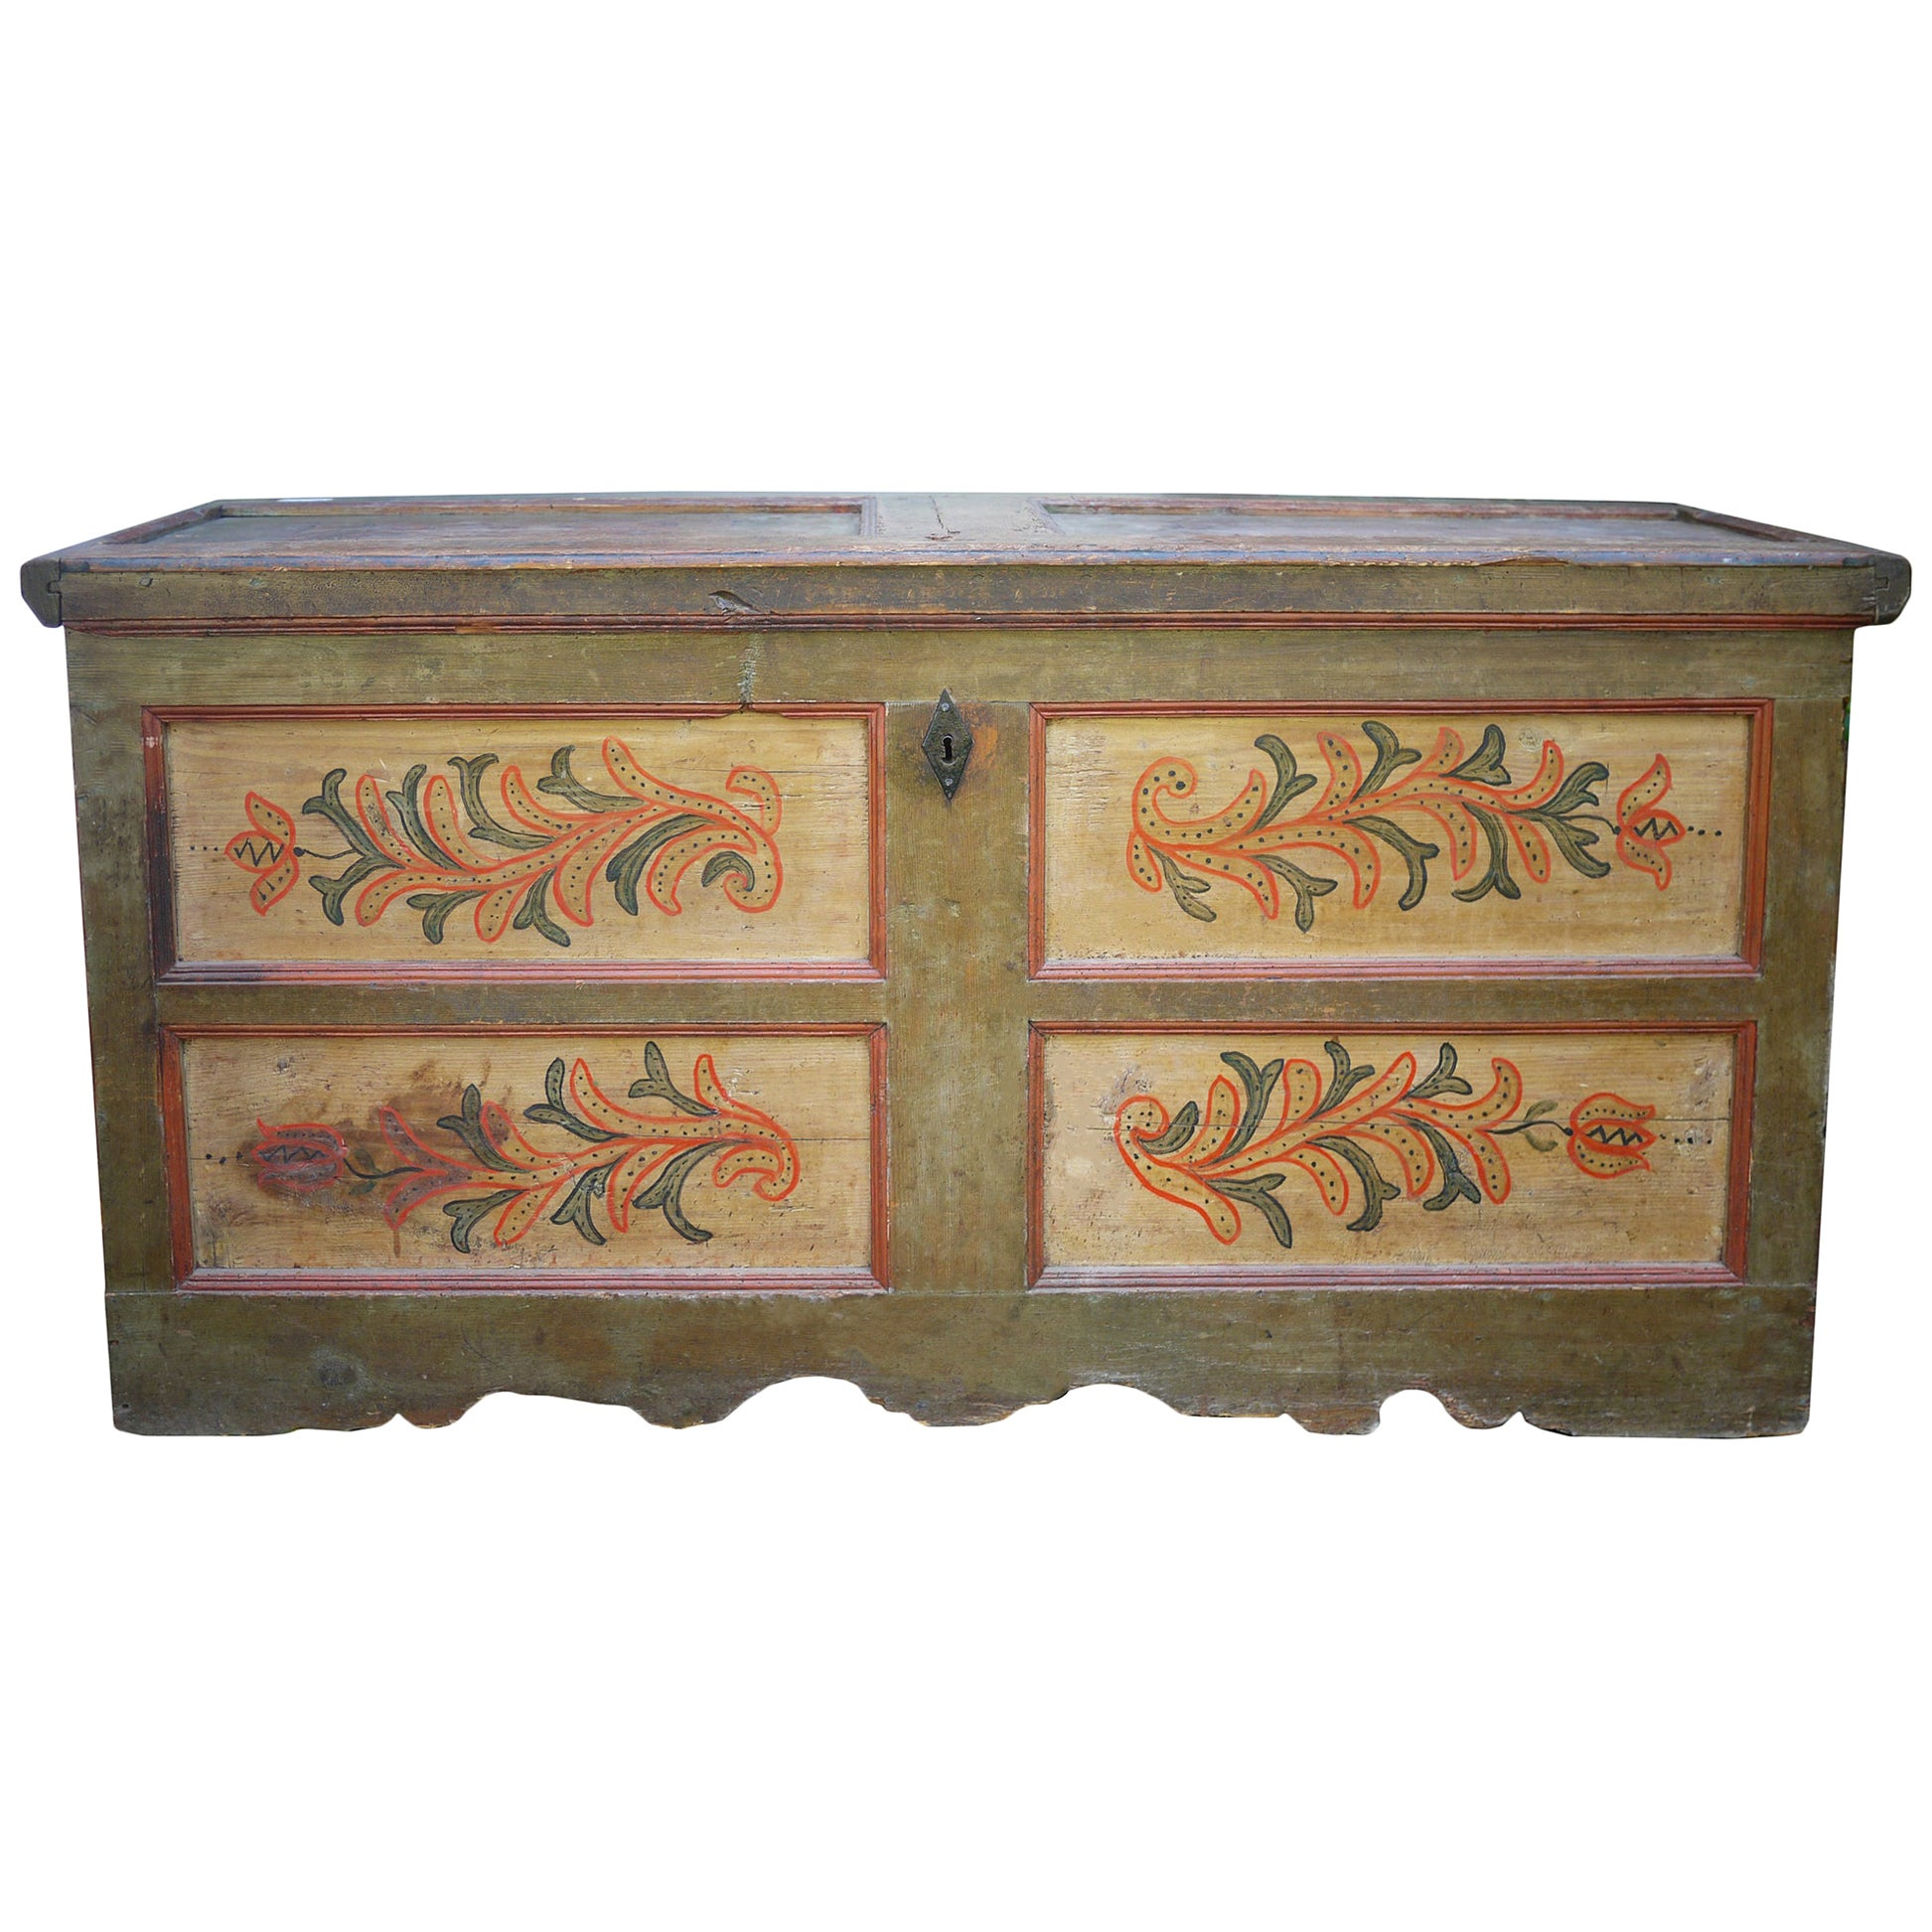 Green Floral Painted Blanket Chest, Italy, 1810